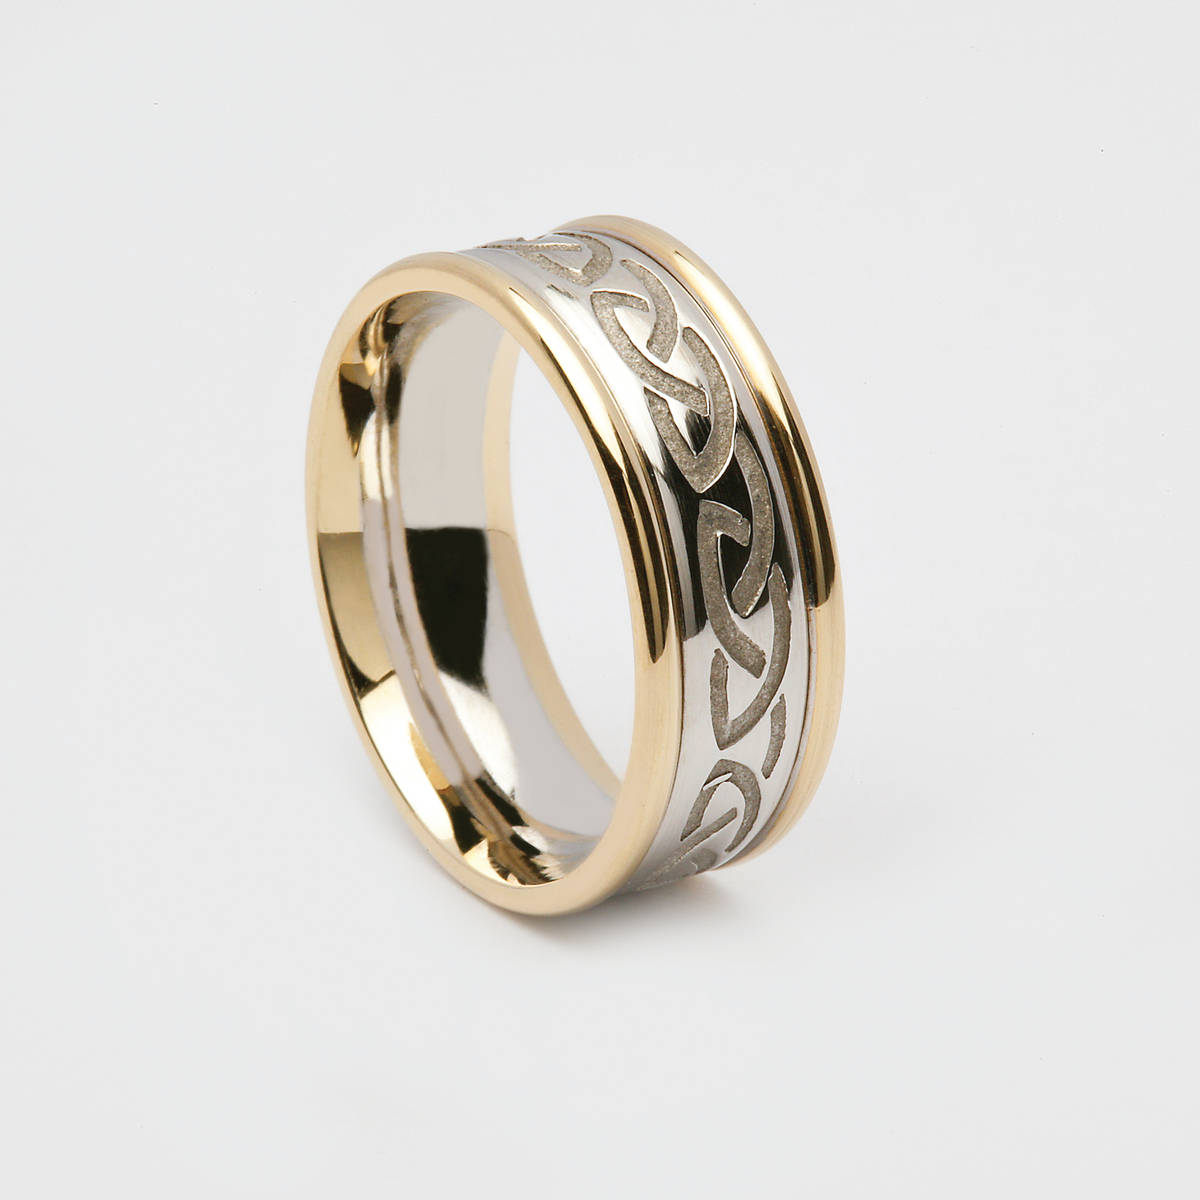 10ct gold Gents Wedding Band with heavy recessed white gold Celtic Knot design centre and yellow gold heavy rims.  Width: 8.7mm Profile: D Shape. (Flat on the inside with a distinctive, domed outside.)